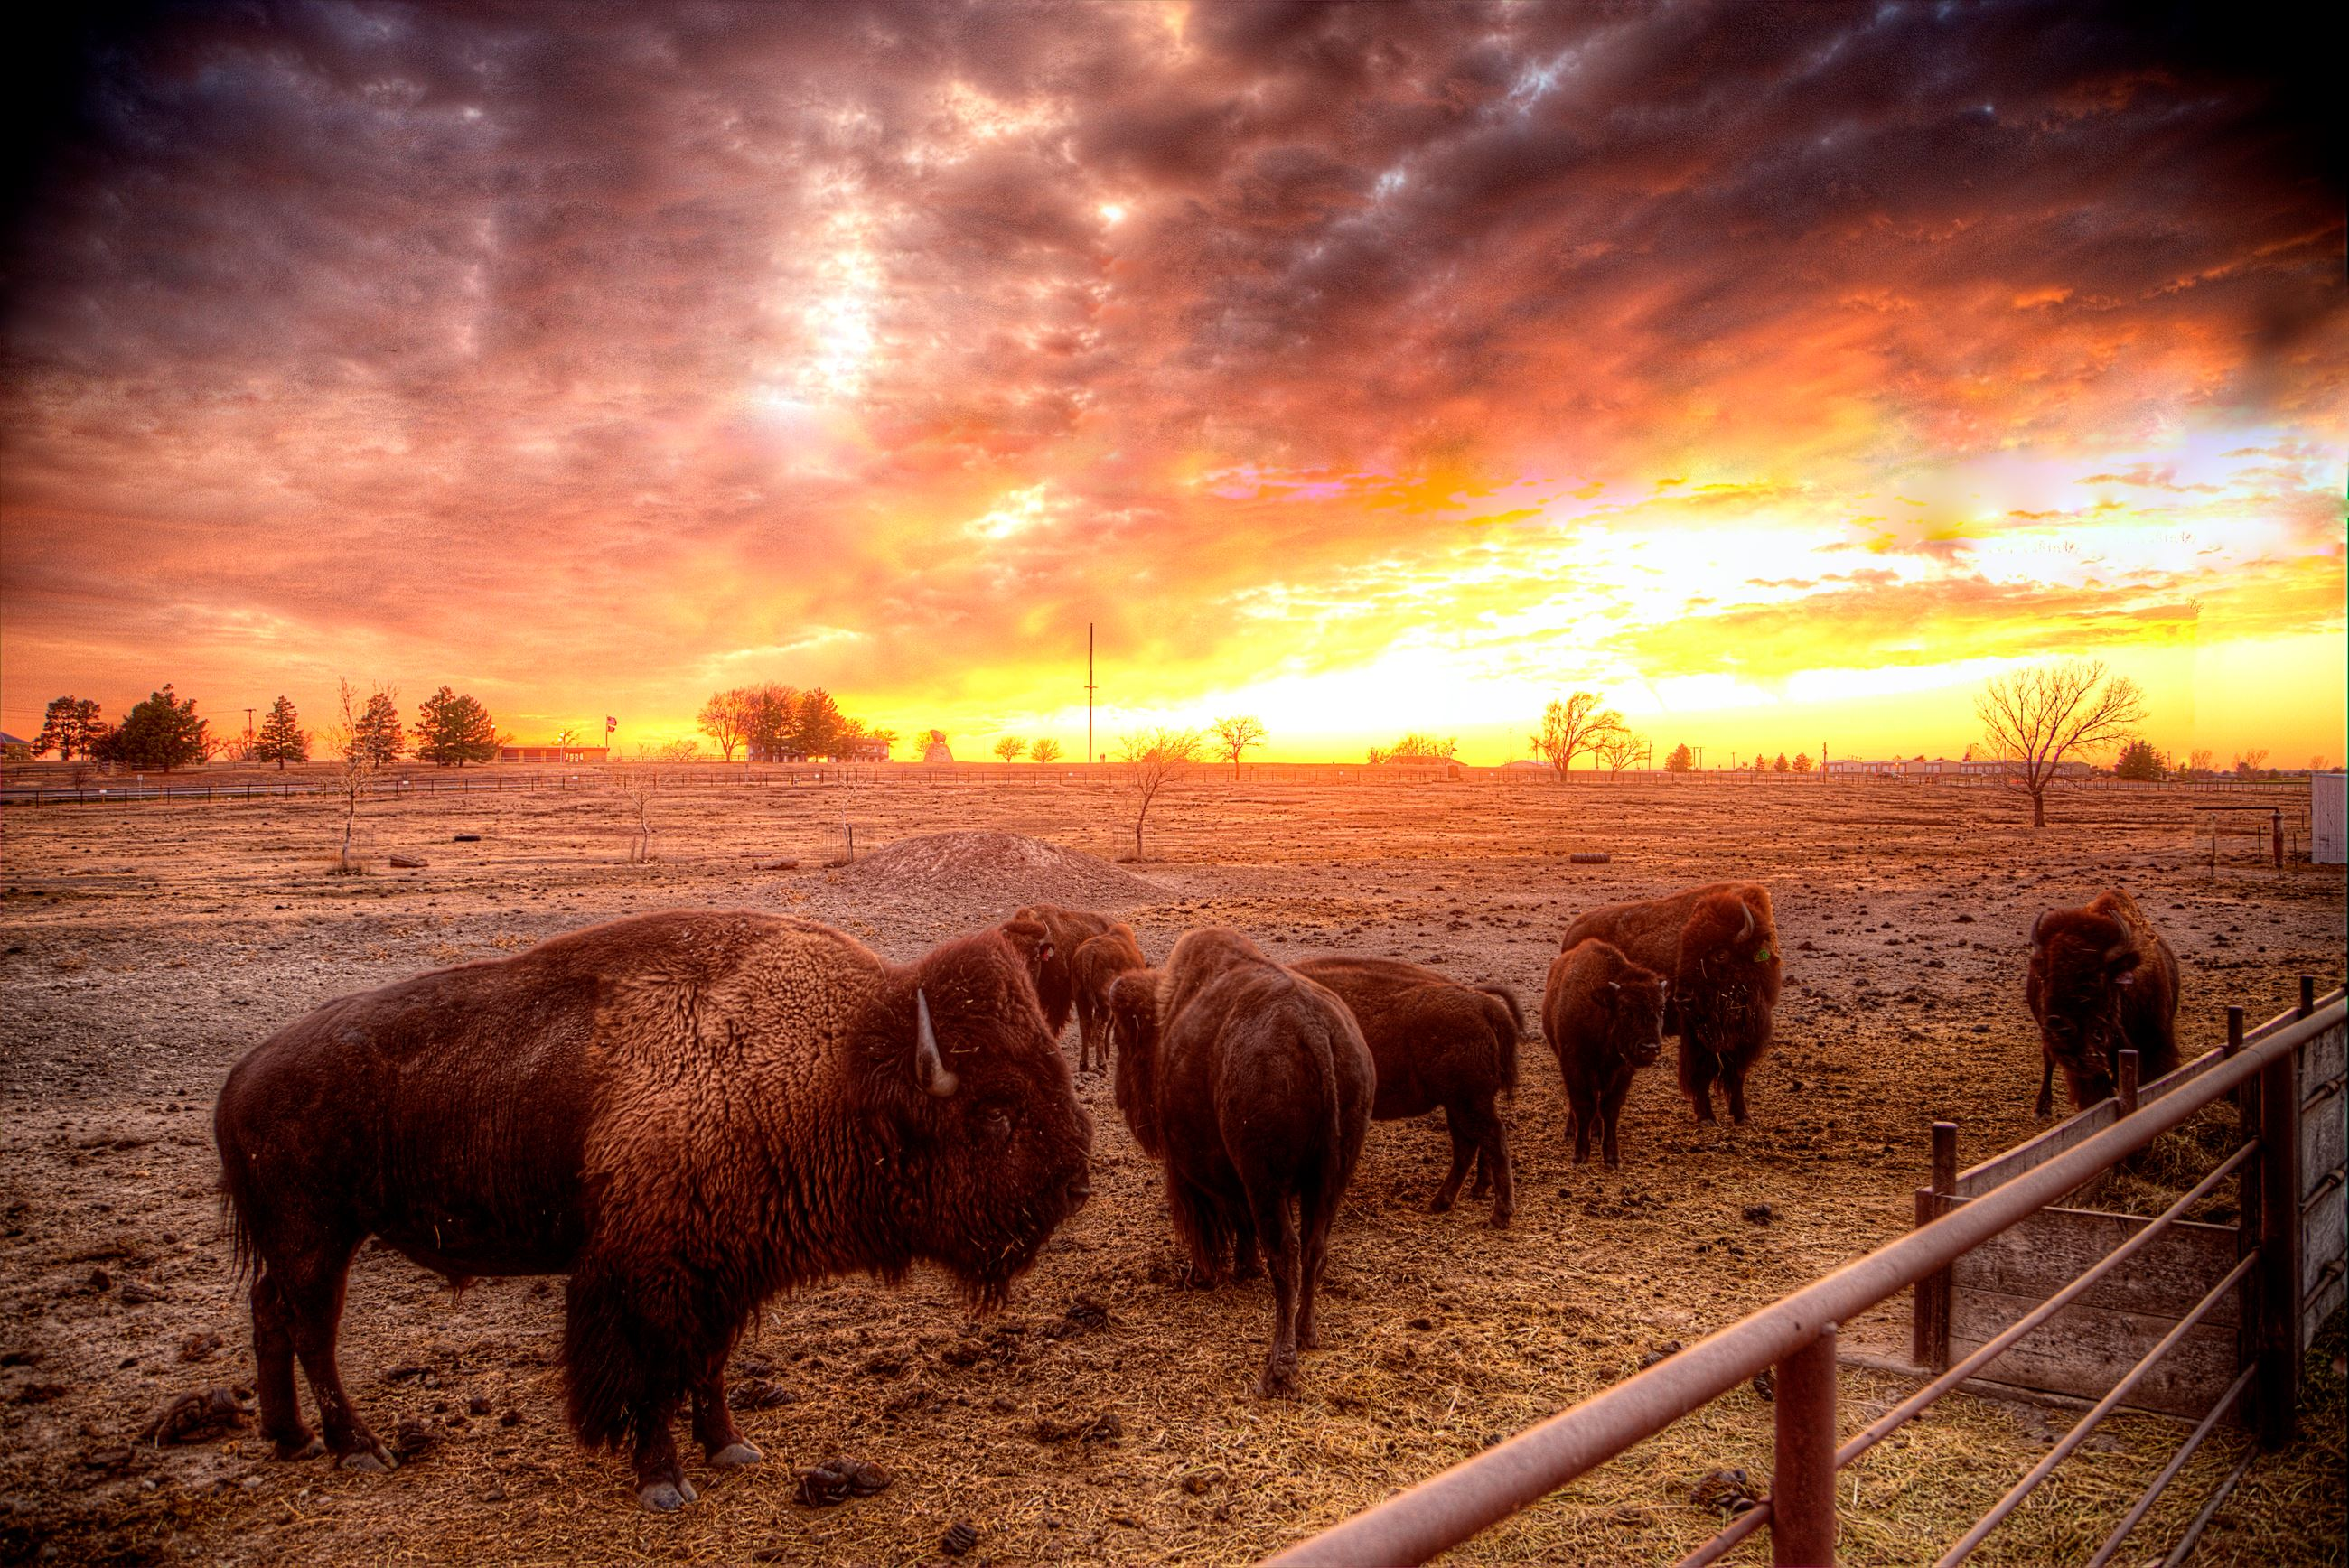 Bison Pens in the Sunset